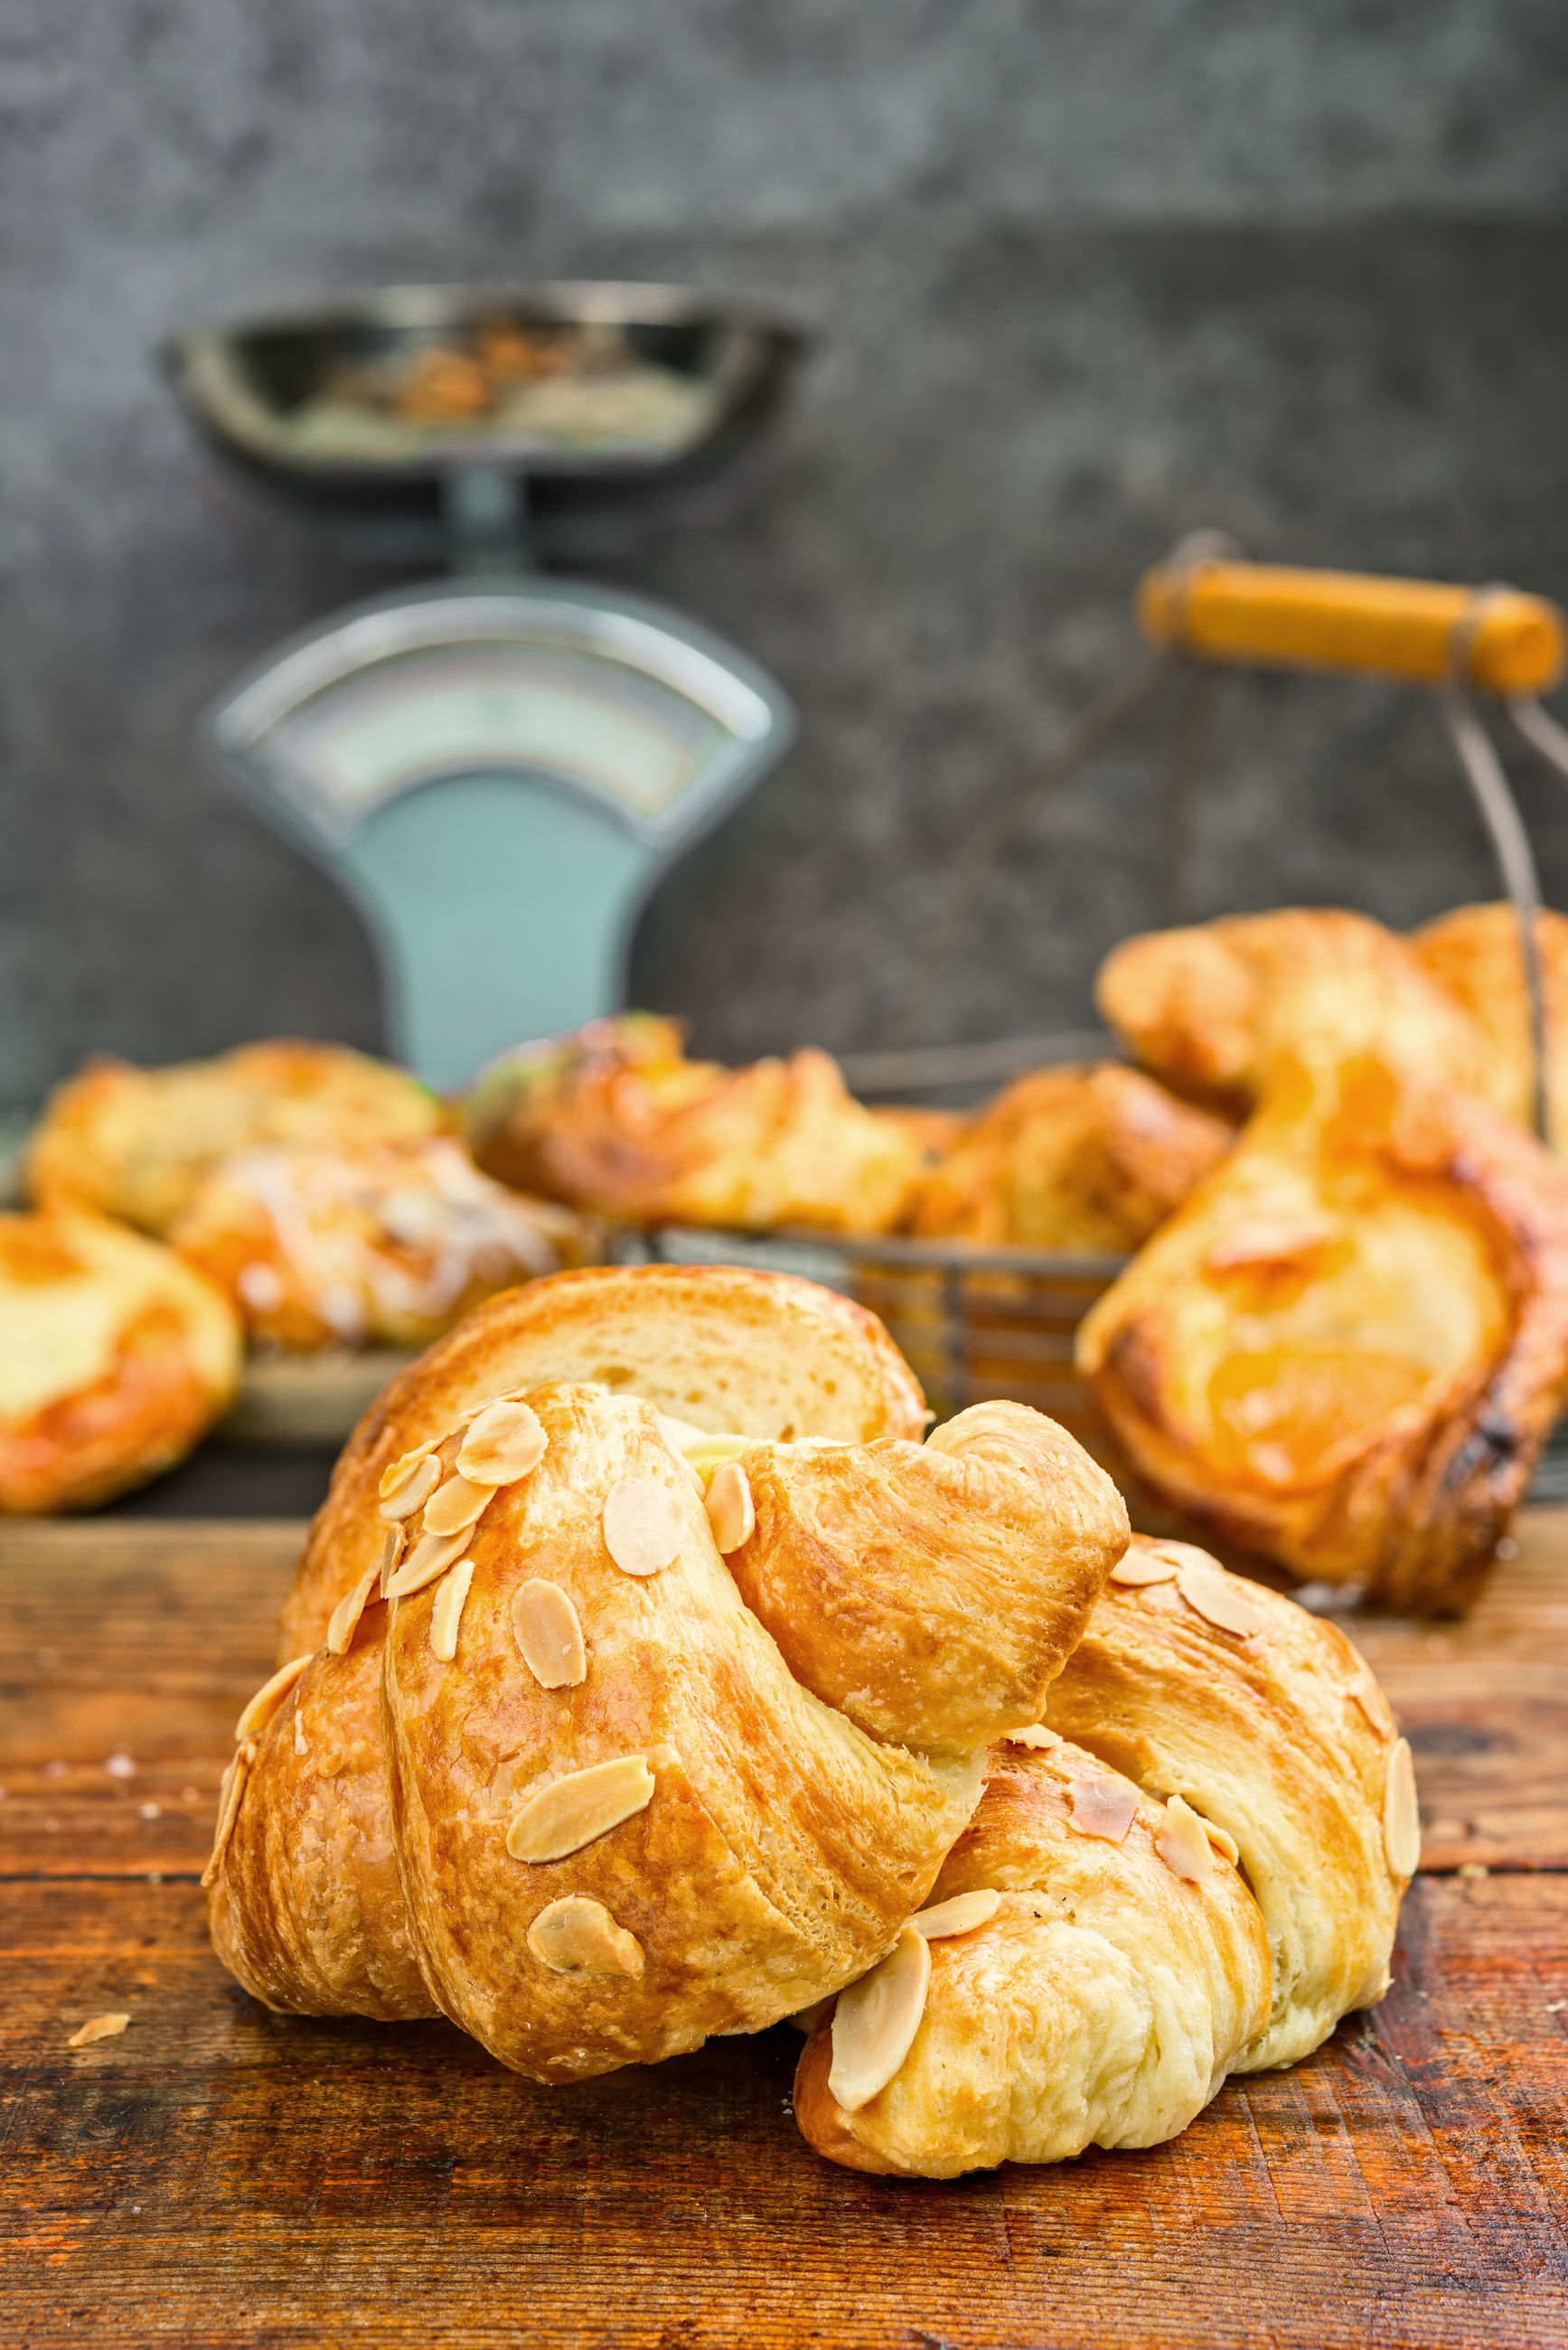 food and drink, food, freshness, still life, indoors, bread, close-up, table, baked, focus on foreground, no people, ready-to-eat, coffee, french food, indulgence, cup, bun, drink, snack, baked pastry item, tray